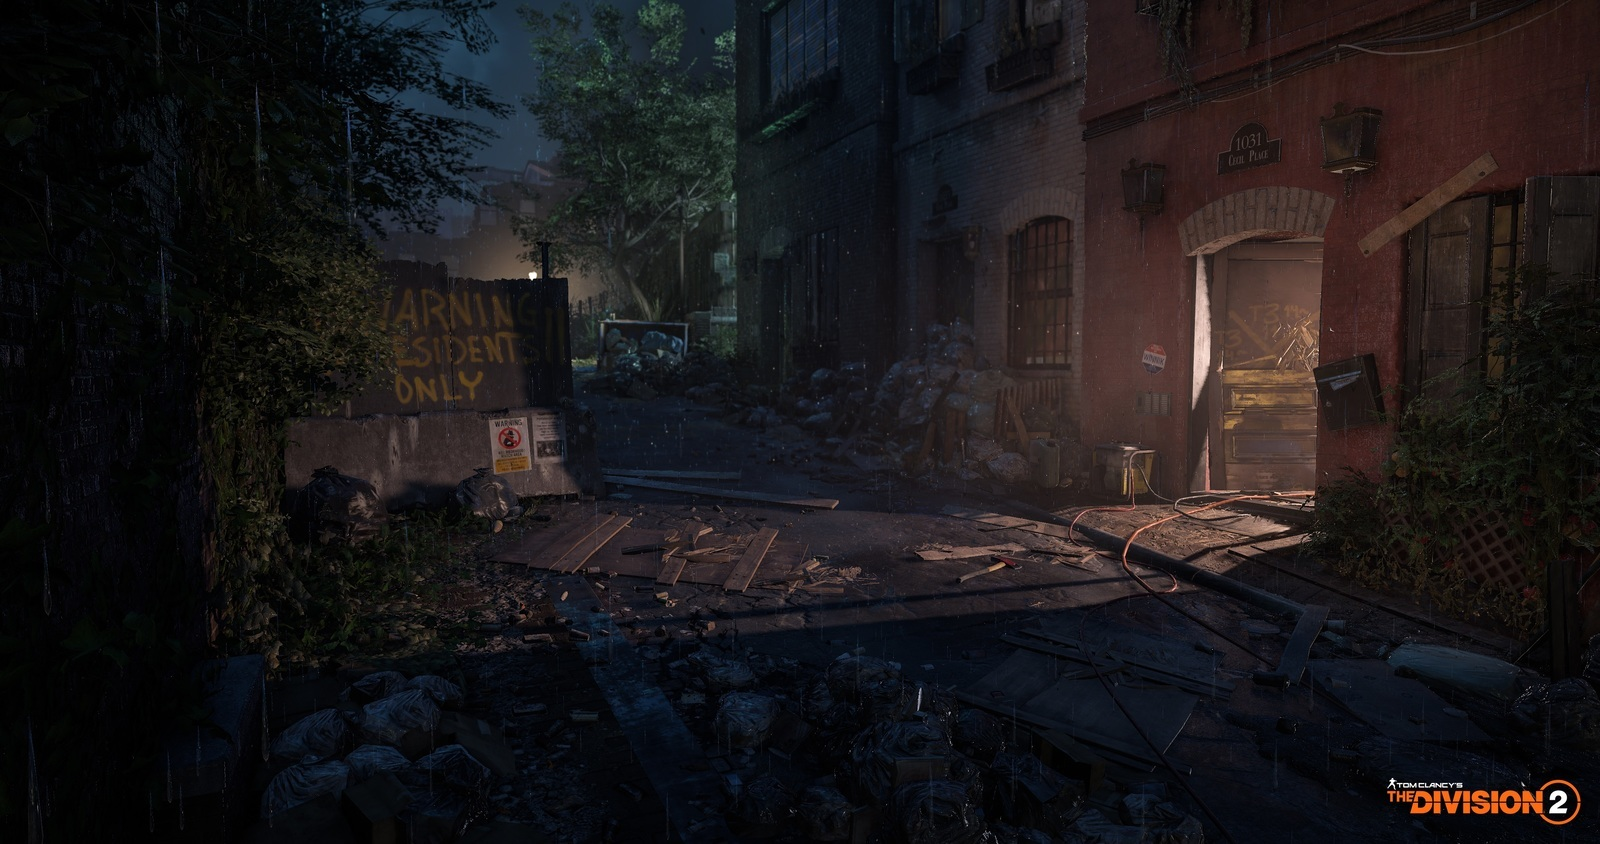 Tom Clancy's The Division 2 for PC image